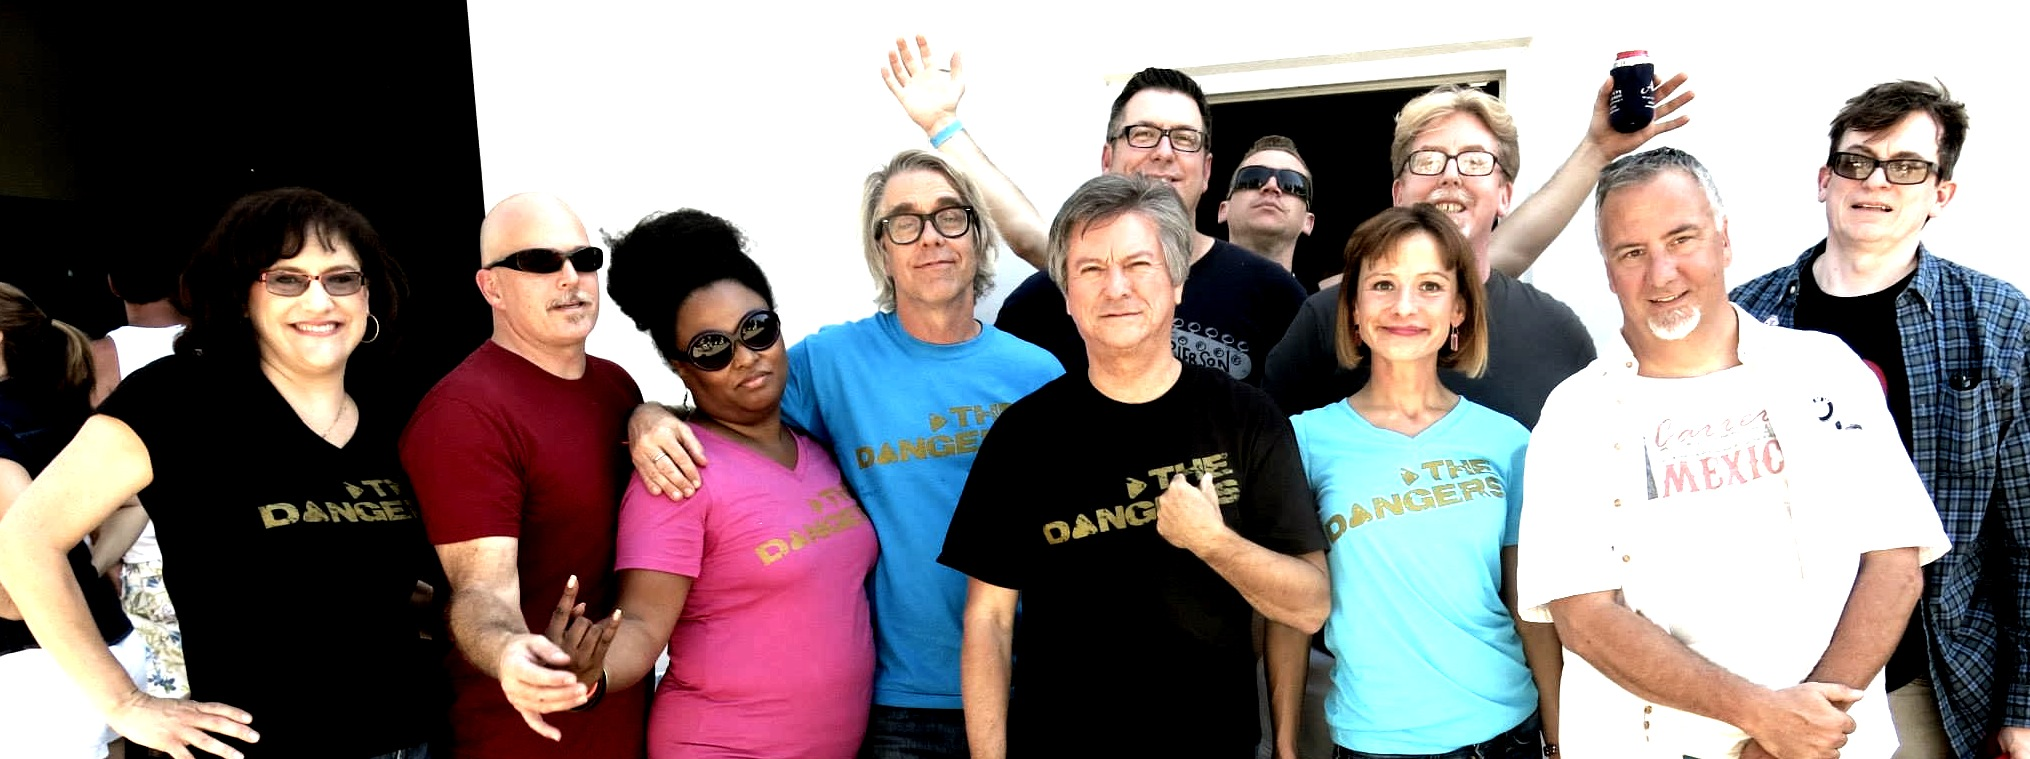 The Dangers' GOLD t-shirts are available in men's and women's styles